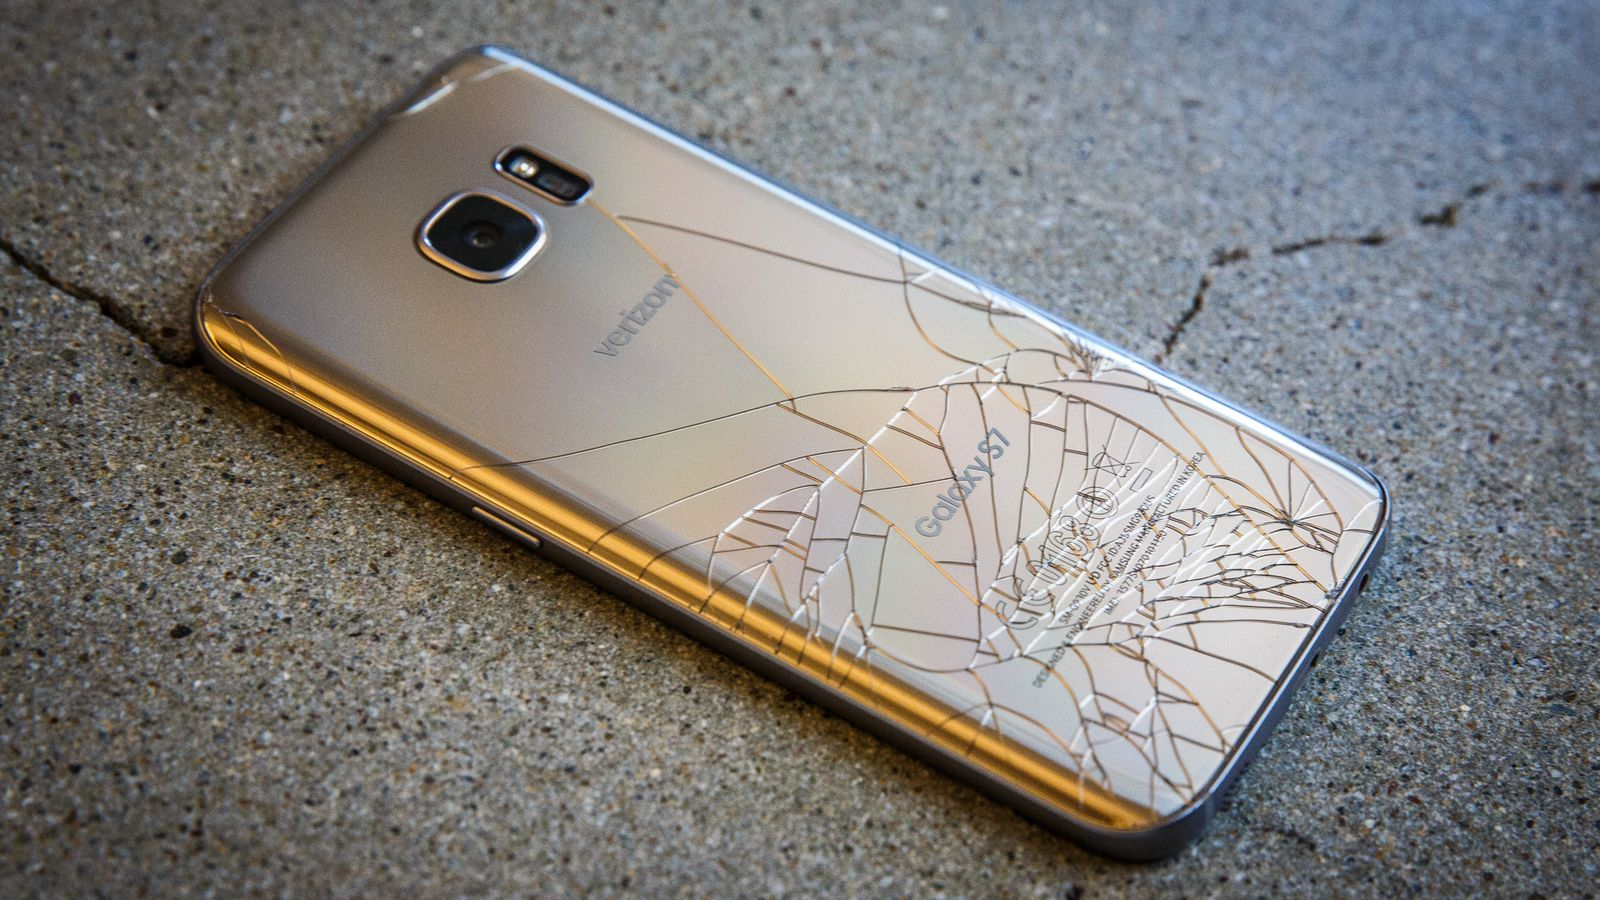 Galaxy S7 Rear Glass Cracked How To Repair It Samsung